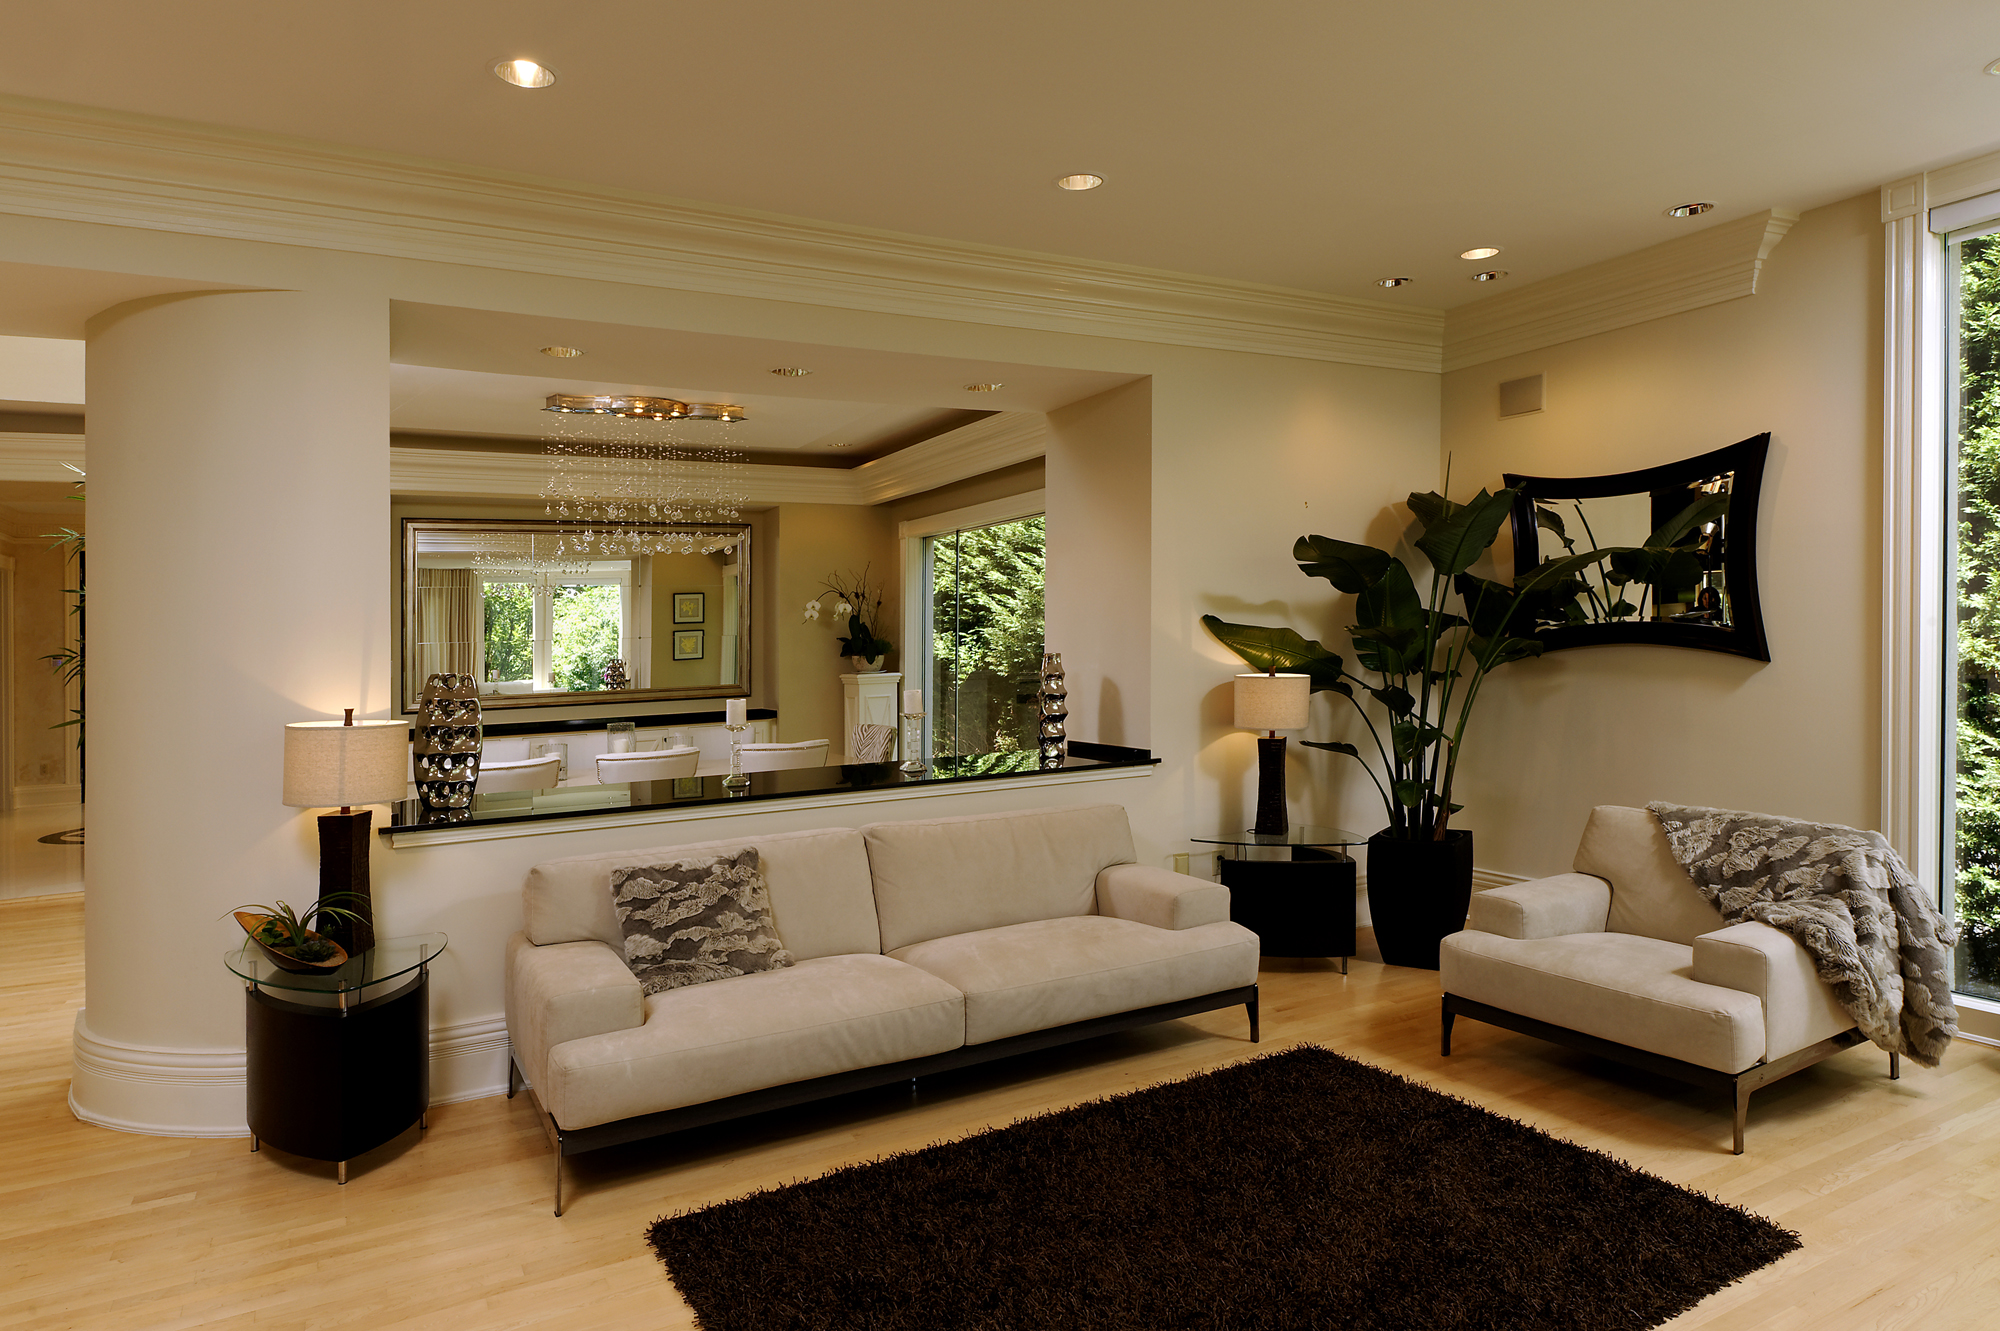 amazing living room interior colors | Spectacular Contemporary Renovation in Washington, D.C. | BOWA